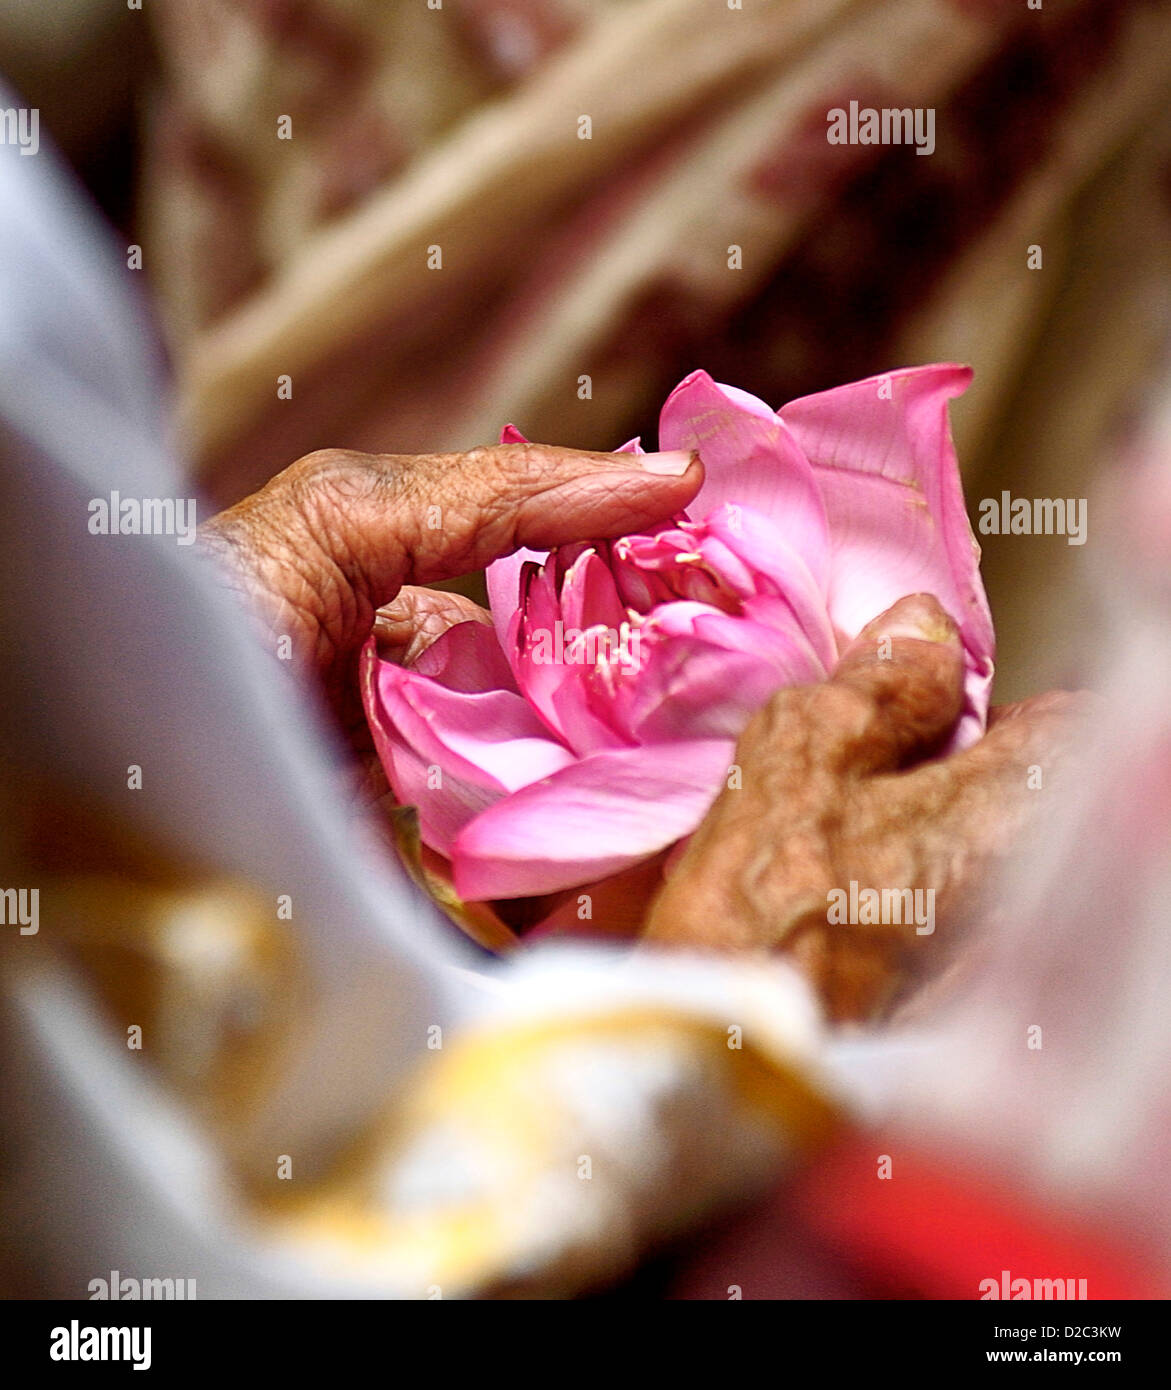 Each holding lotus flower stock photos each holding lotus flower man holding lotus flower in his hand for prayers india stock image mightylinksfo